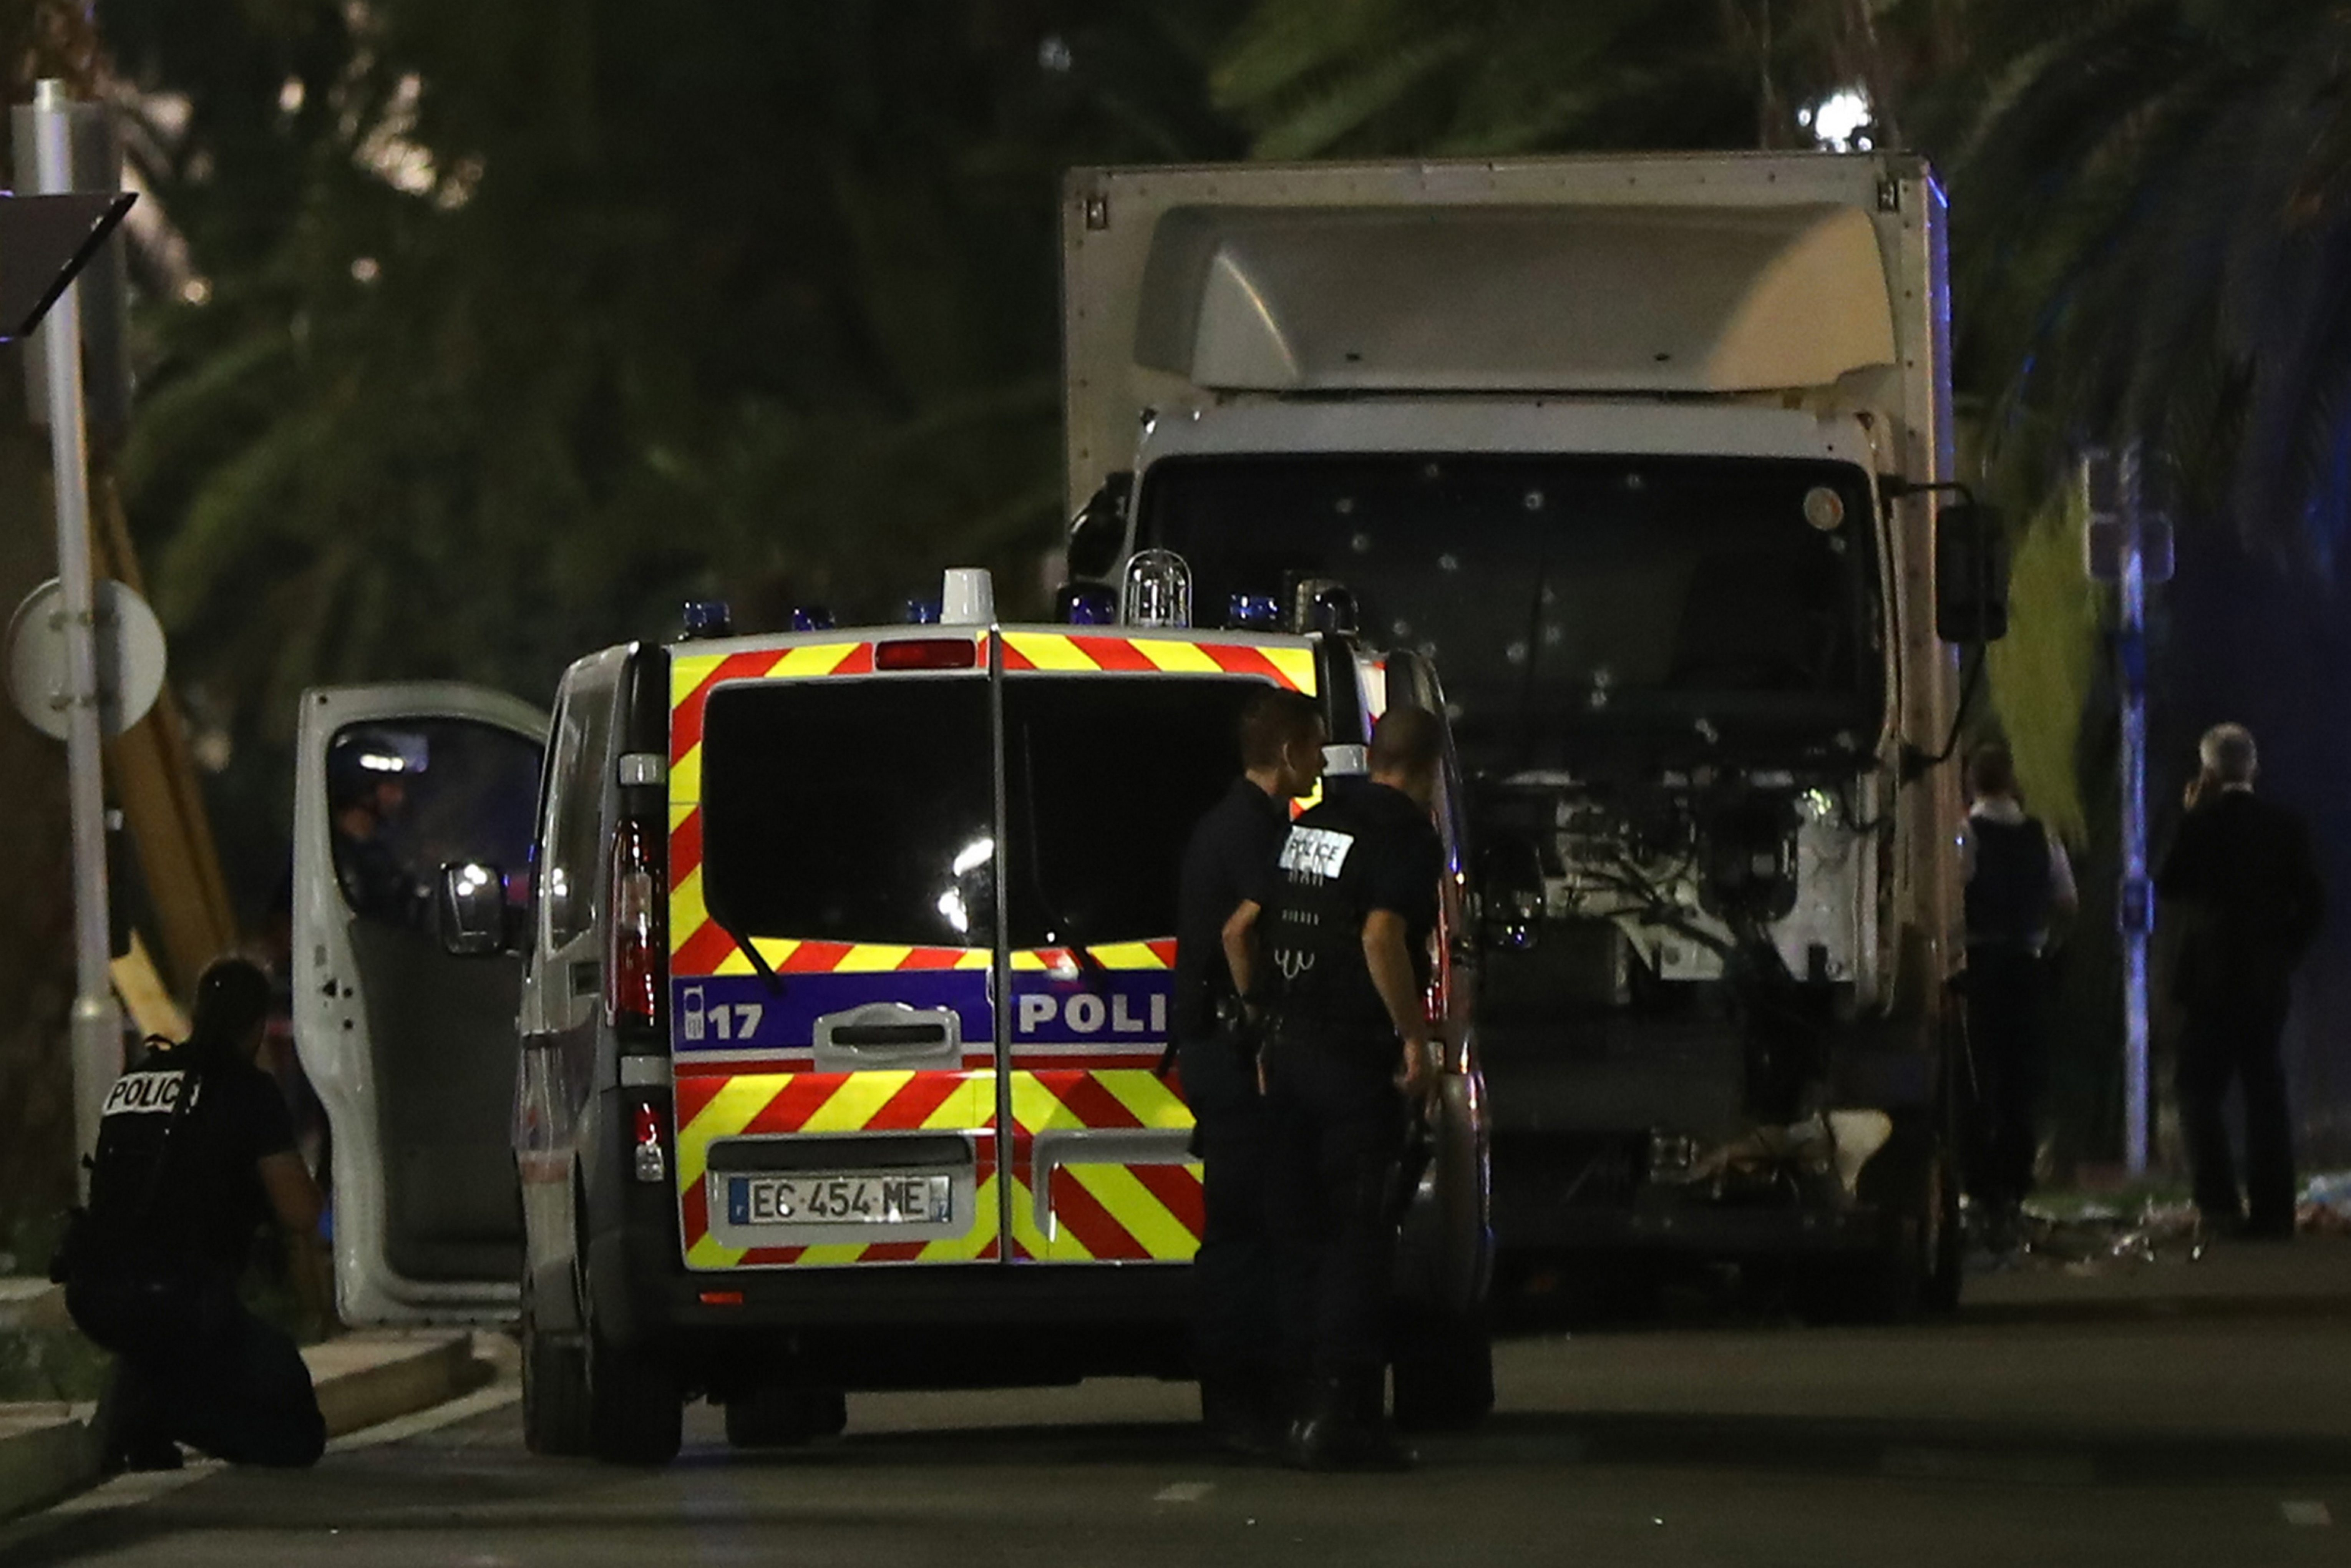 Police officers stand near a truck that drove into a crowd leaving a fireworks display in the French Riviera city of Nice, killing at least 70 people and injuring about 100. The Interior Ministry reported that the driver of the truck was shot.